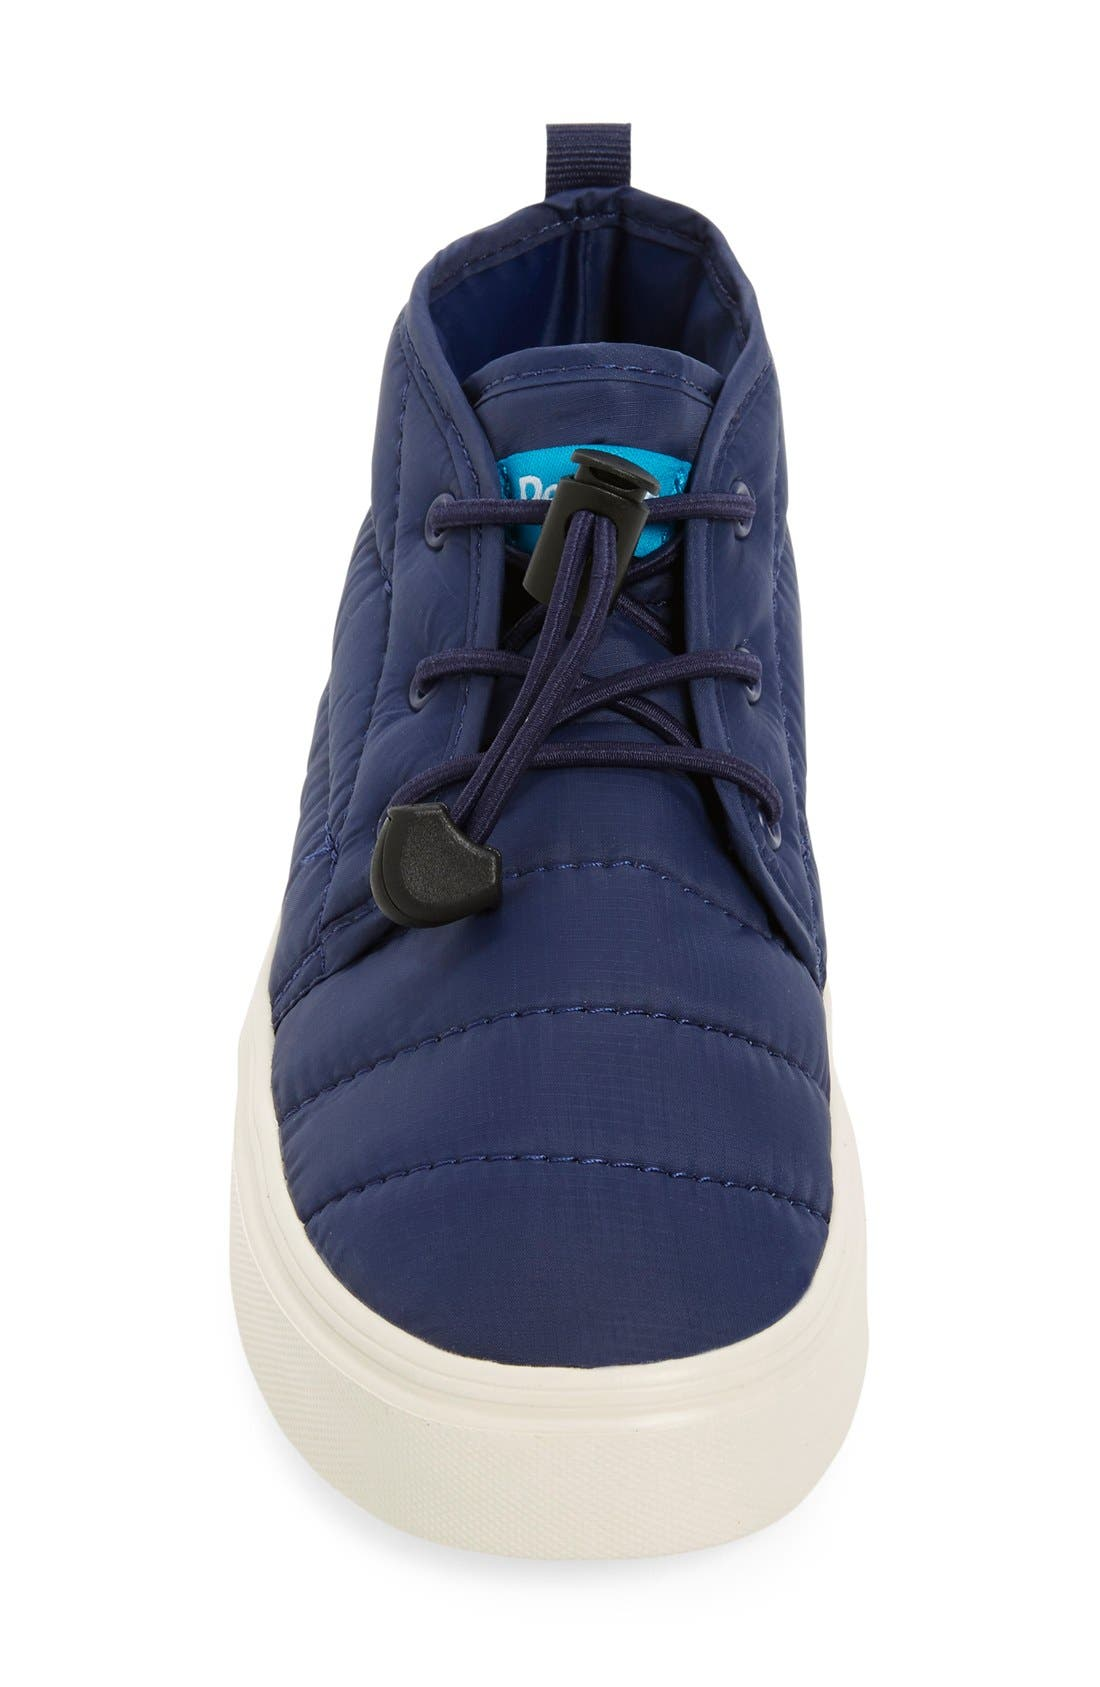 'Cypress' Sneaker,                             Alternate thumbnail 3, color,                             MARINER BLUE/ PICKET WHITE